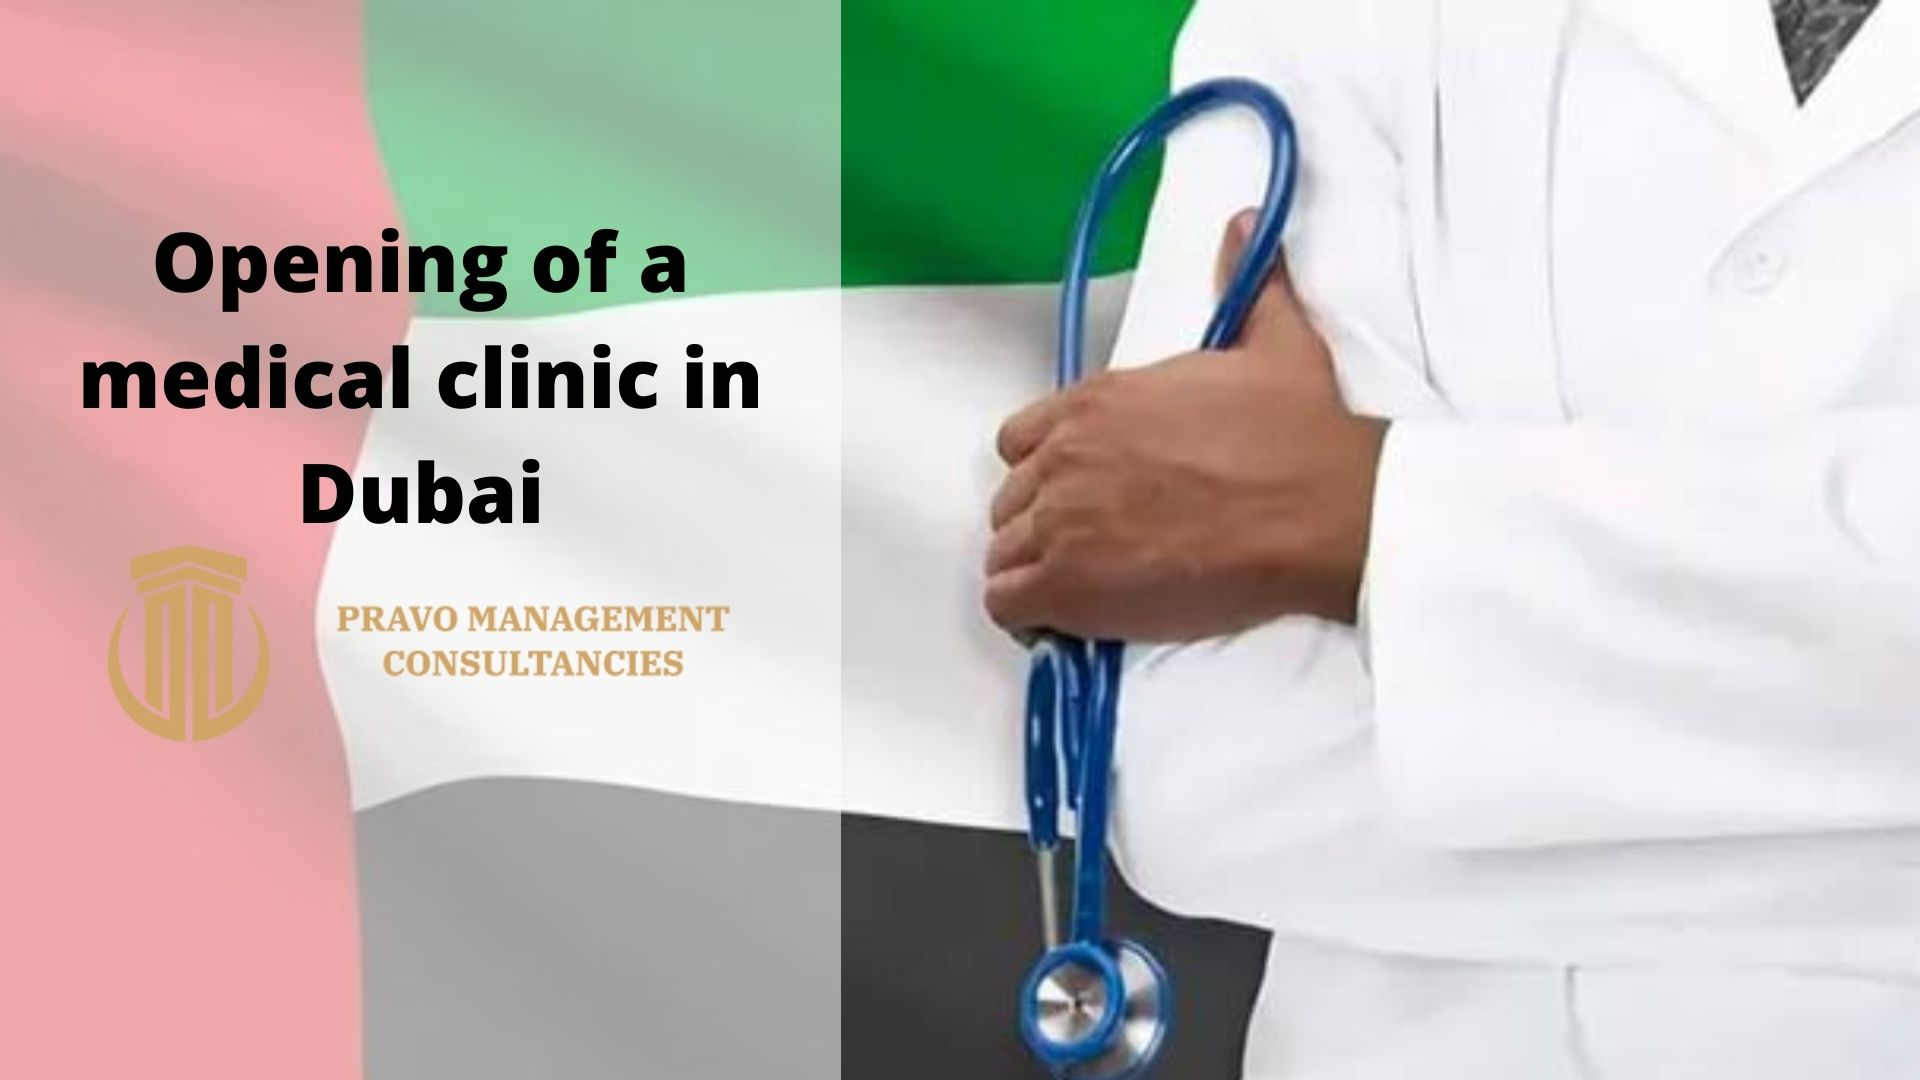 Opening of a medical clinic in Dubai